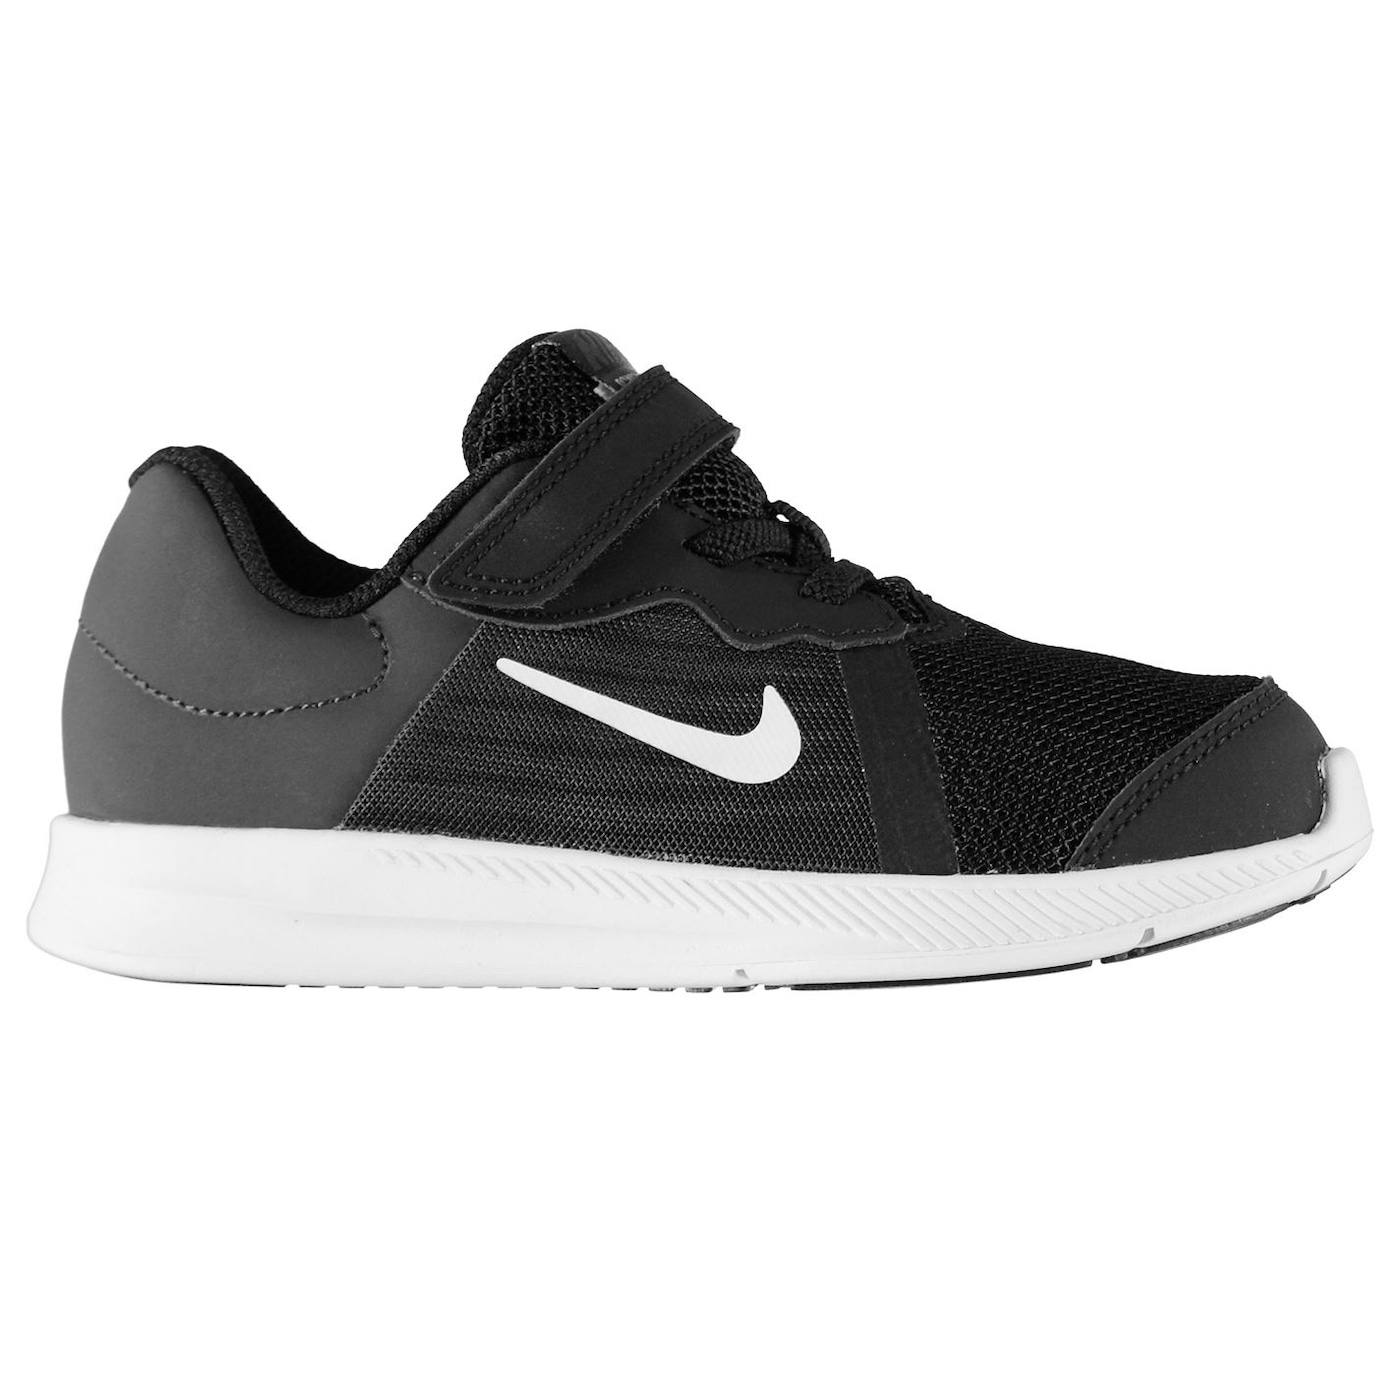 Nike Downshifter 8 Inf84